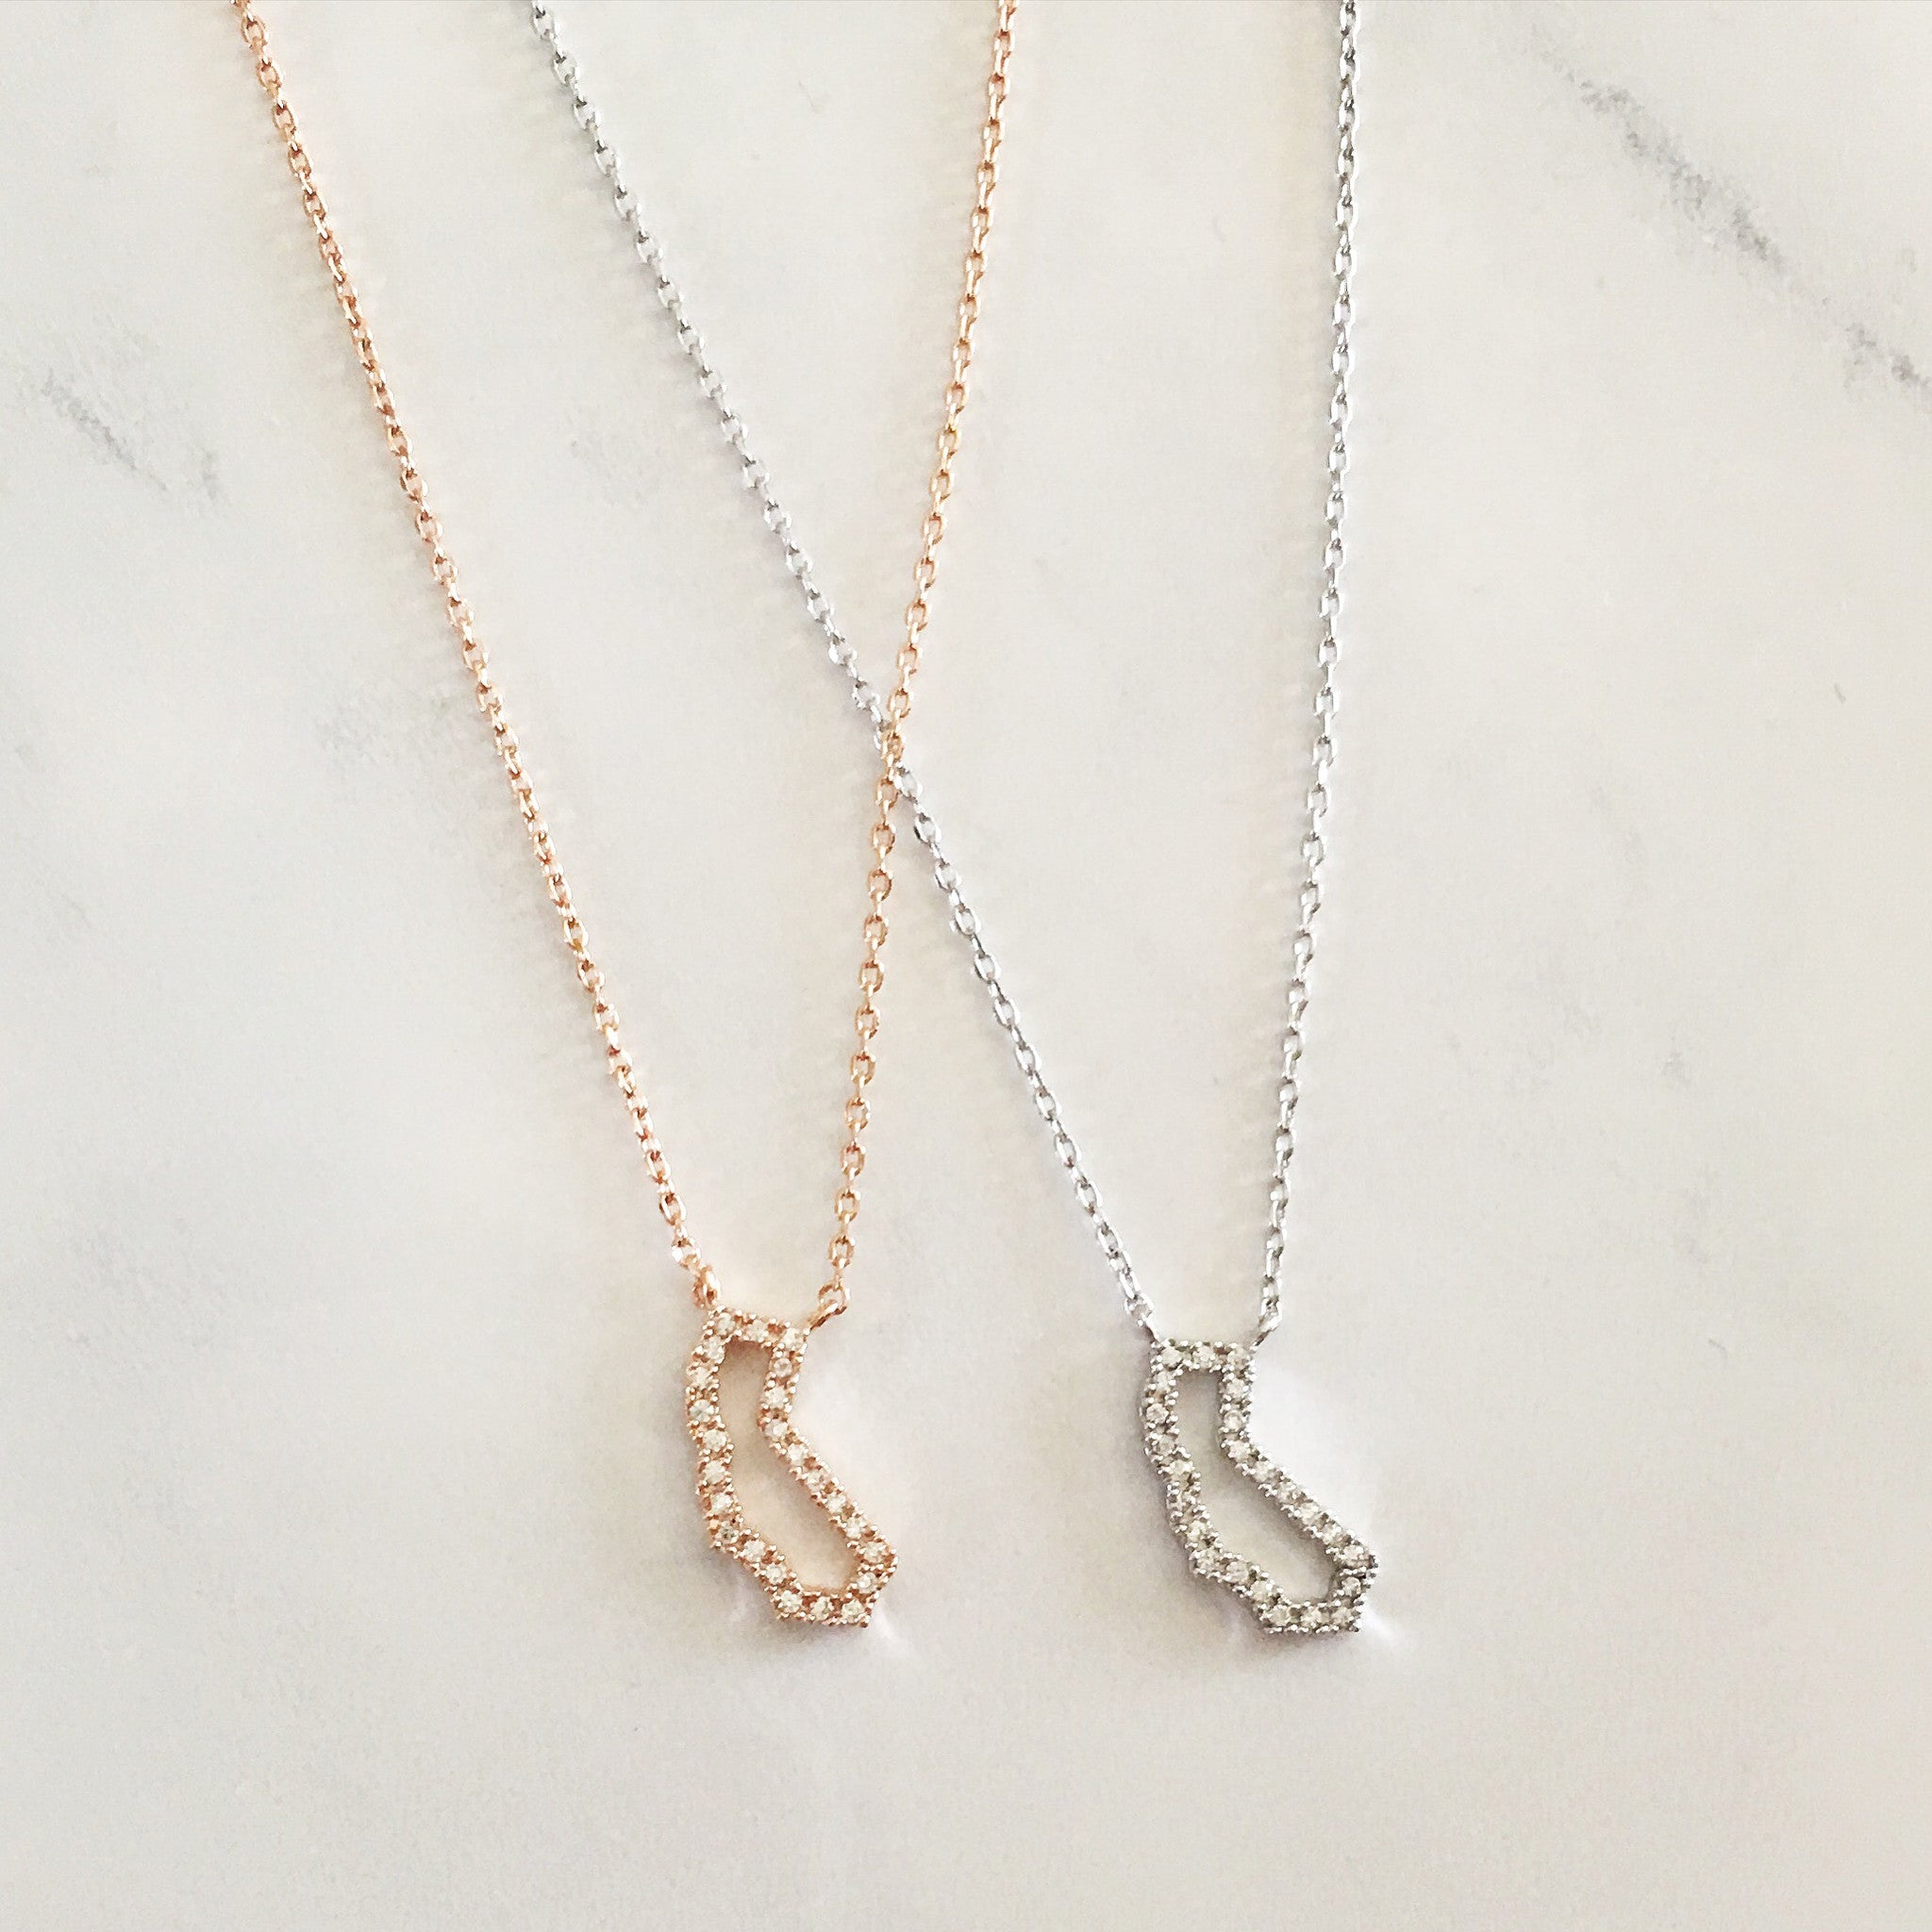 CRYSTAL CALIFORNIA -Necklace